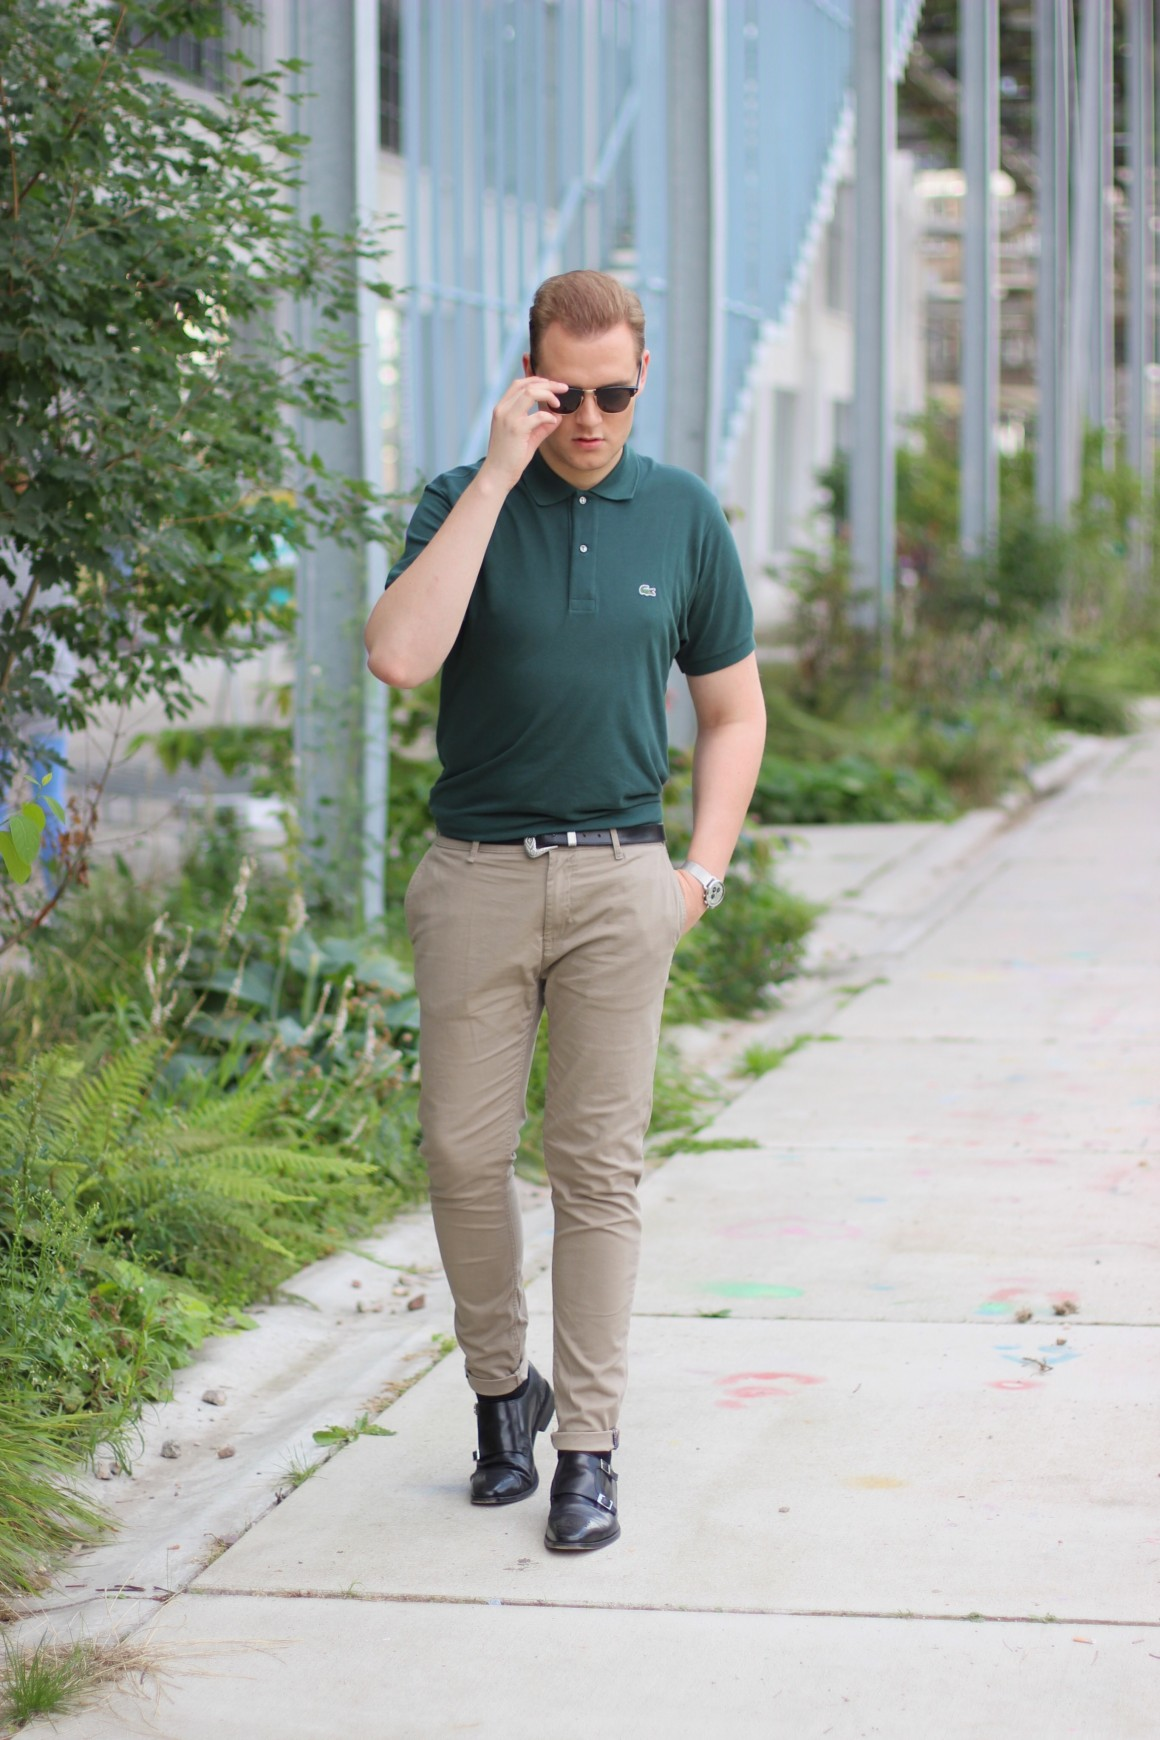 Mister Green JustKVN menswear and lifestyle blog